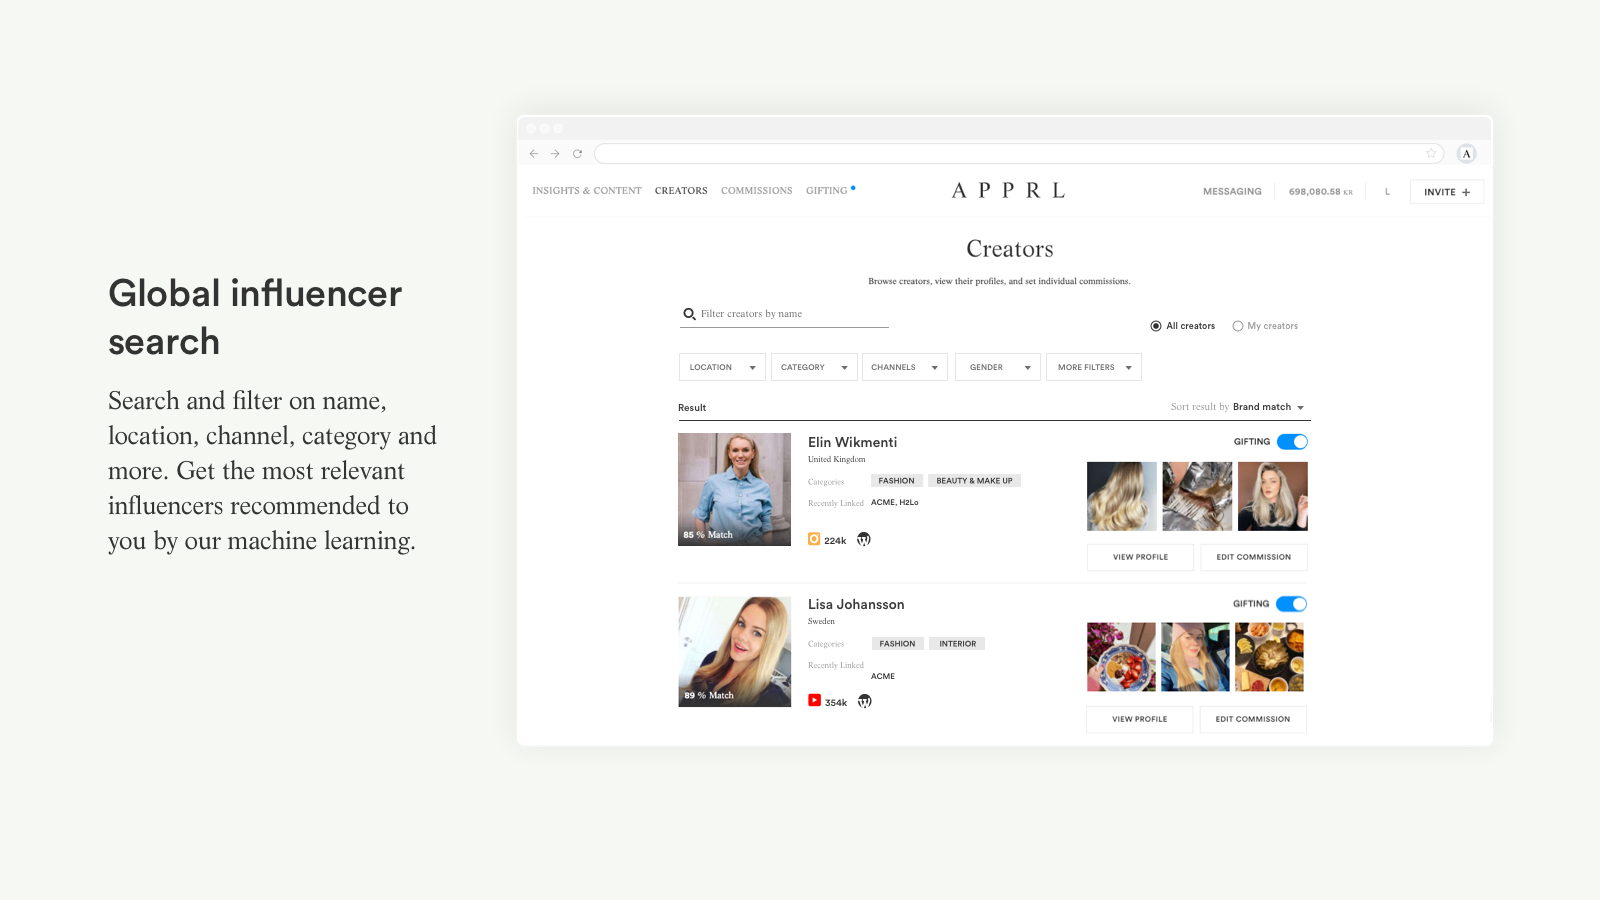 Global influencer search